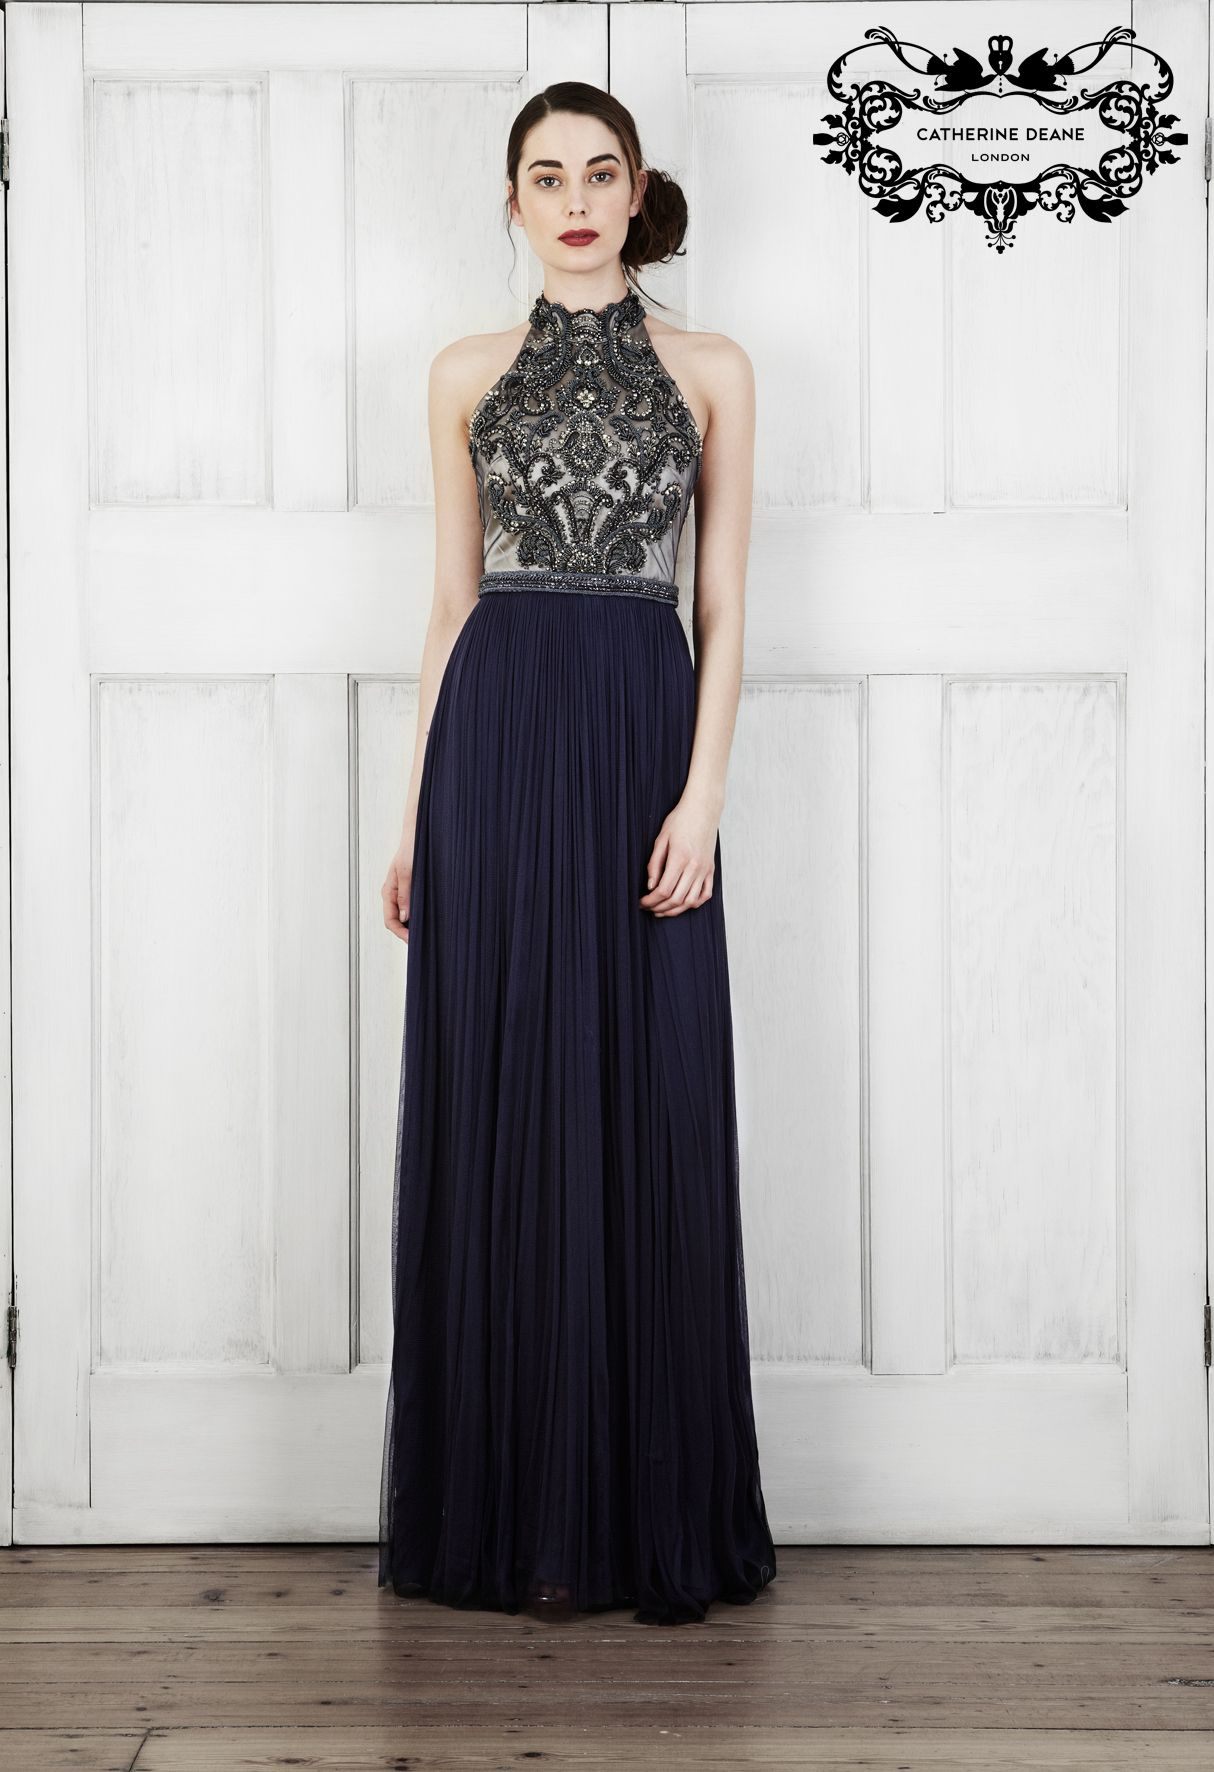 The Wish gown | Catherine Deane | AW14 | EnjoyFashion | Pinterest ...